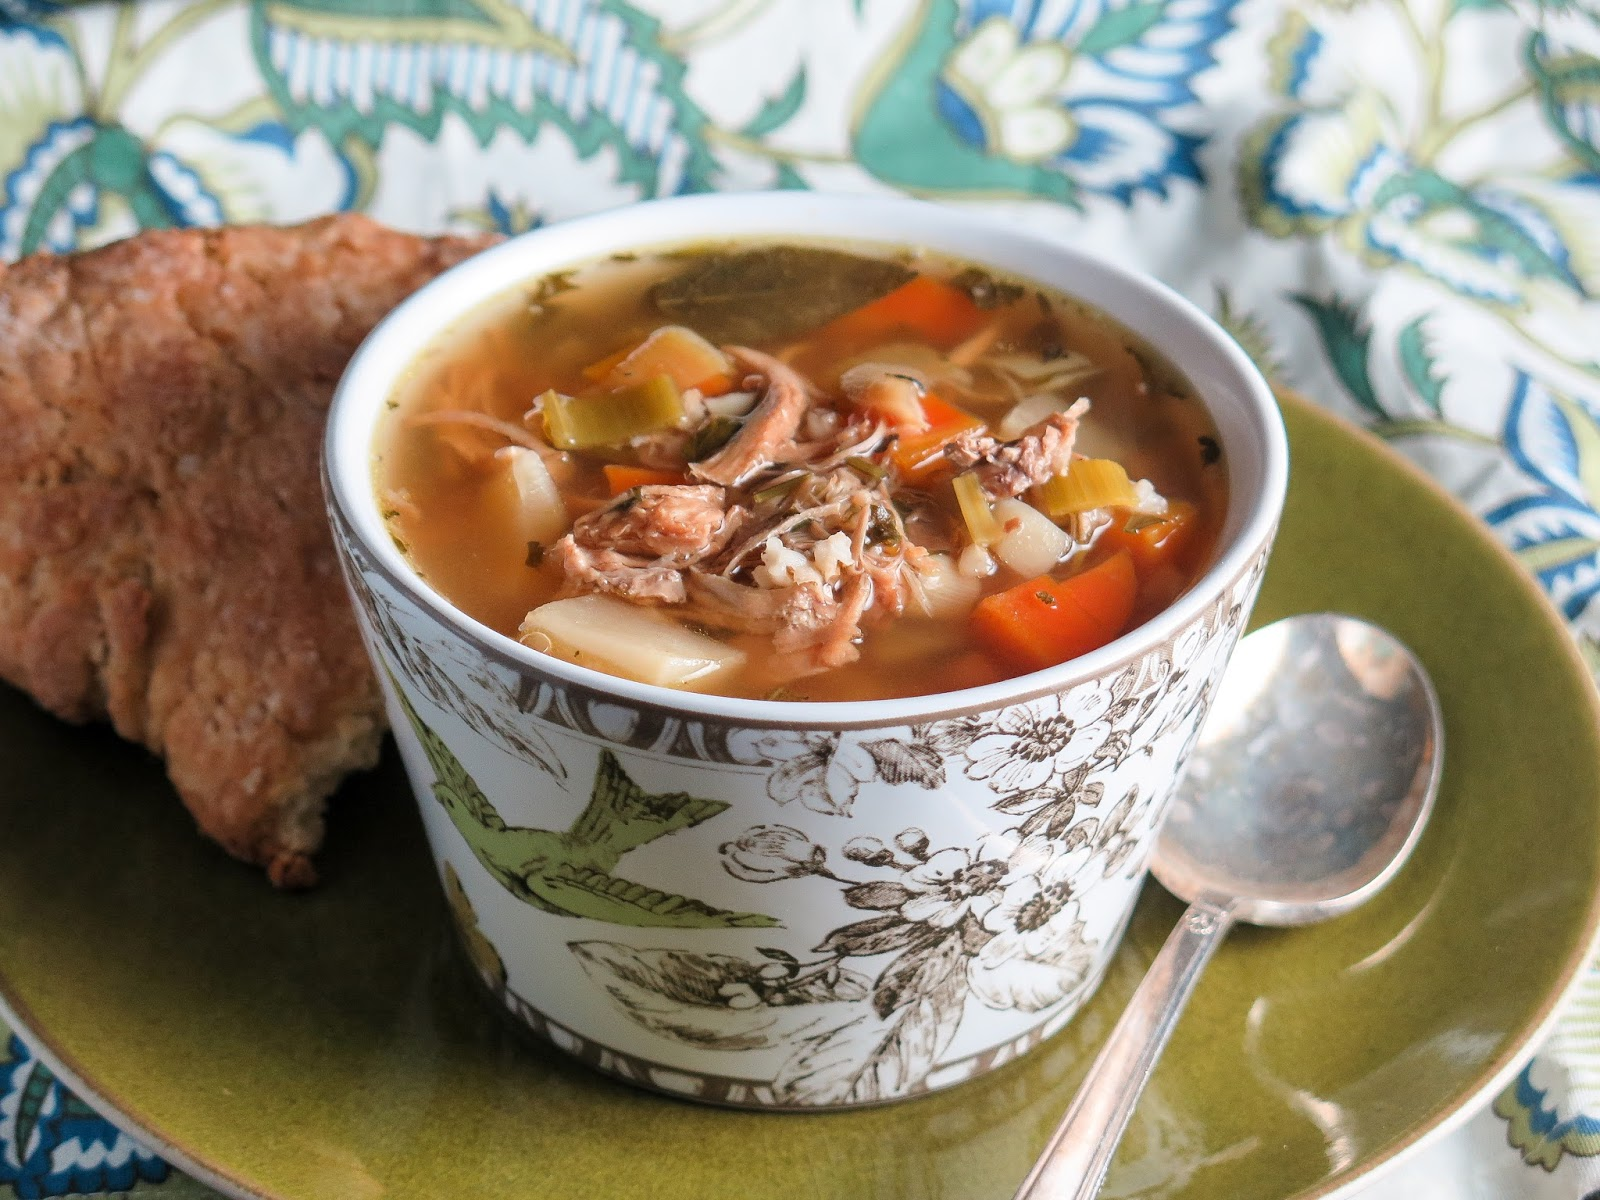 The Yum Yum Factor: Turkey Scotch Broth is a Snap In The Instant Pot